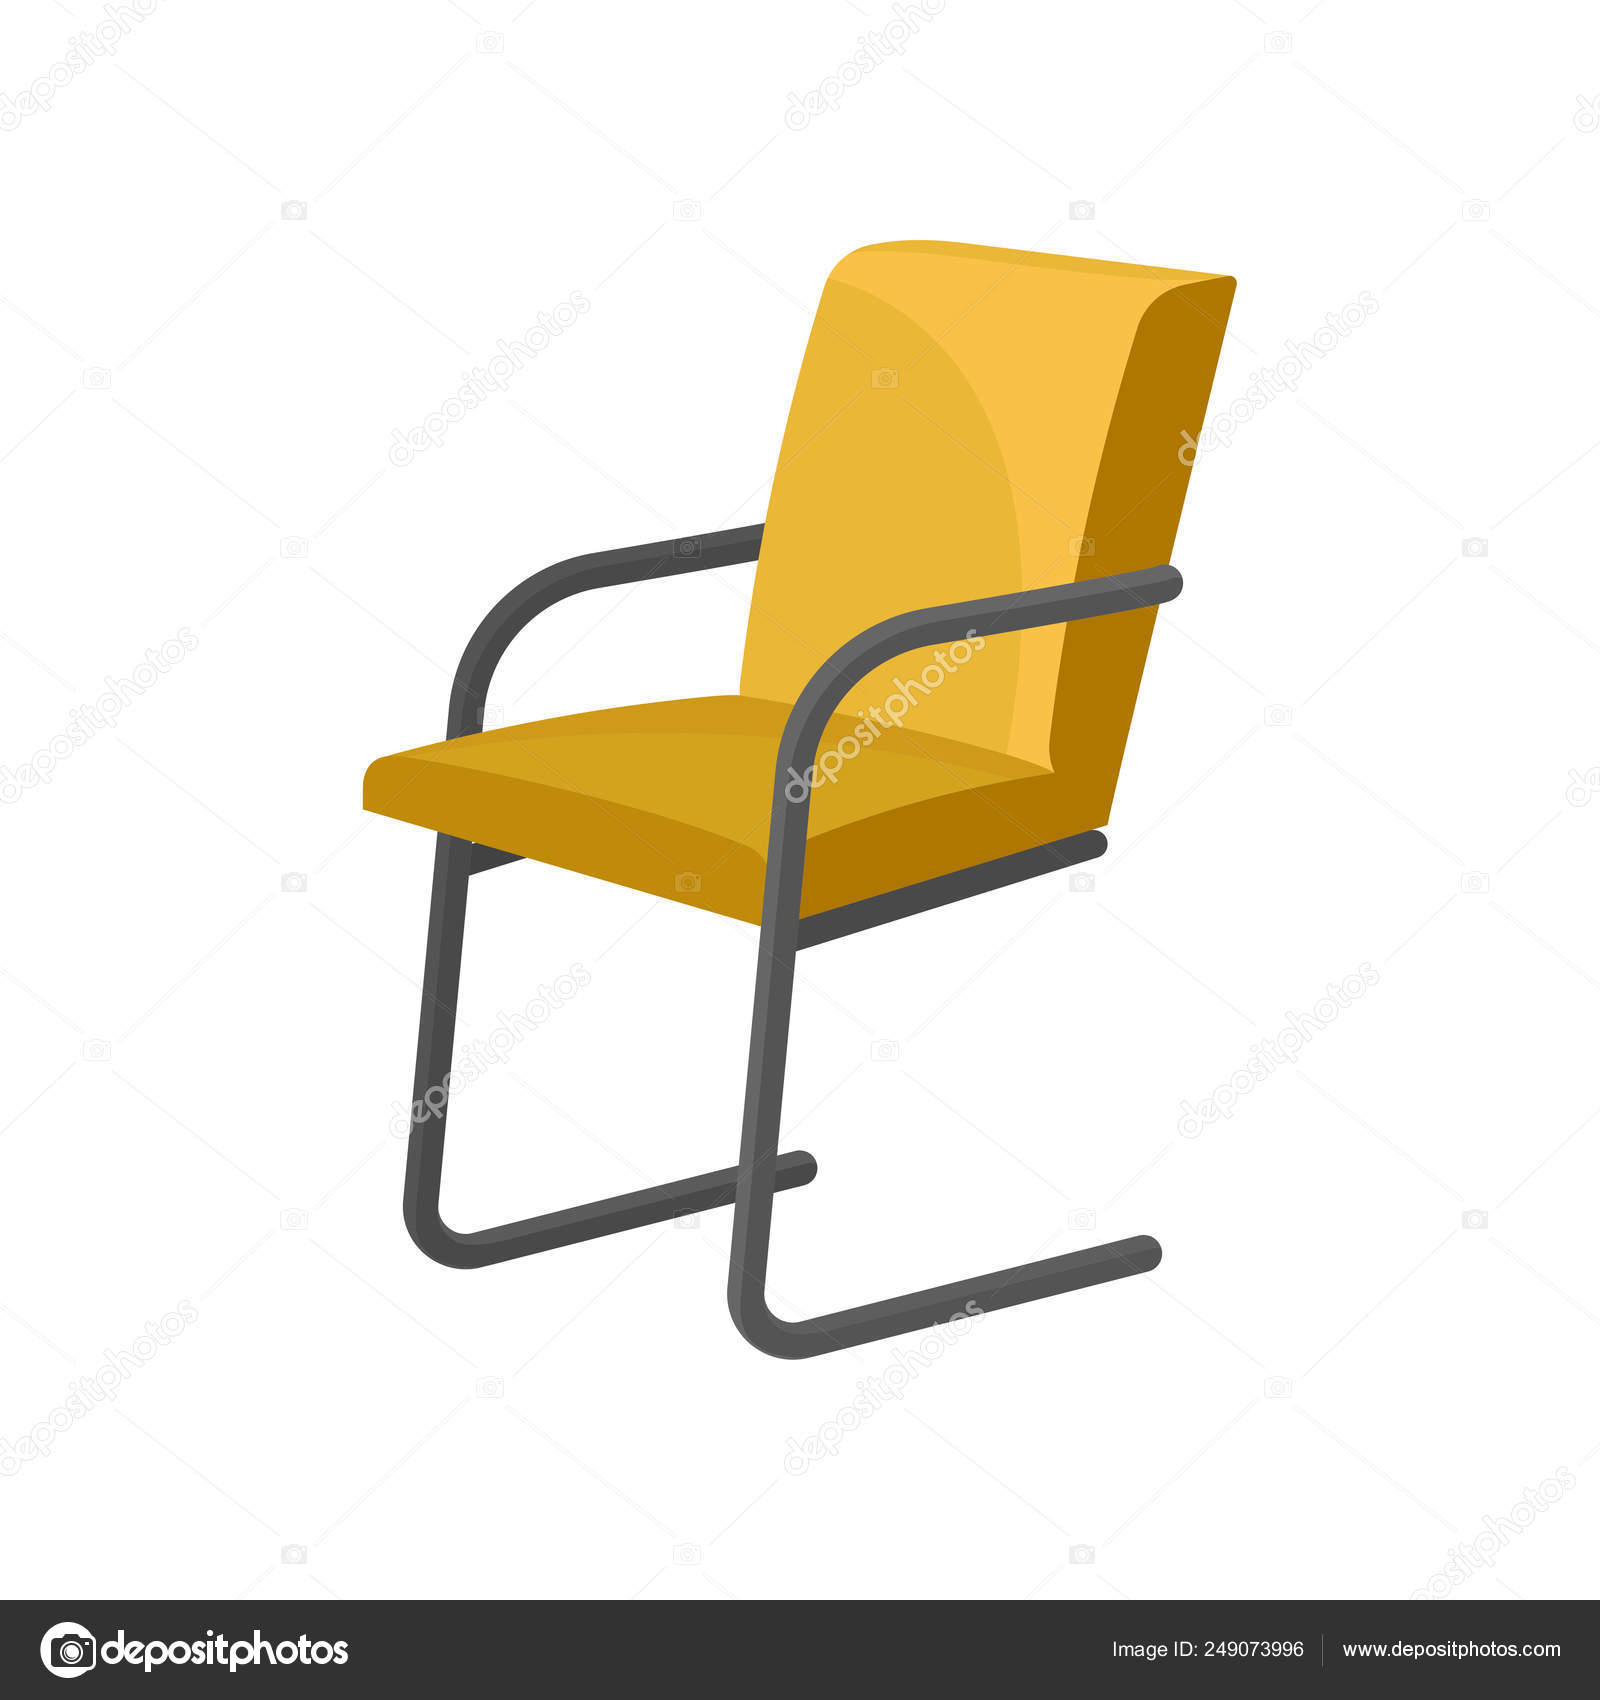 Remarkable Modern Chair With Bright Yellow Upholstery Metal Legs And Machost Co Dining Chair Design Ideas Machostcouk